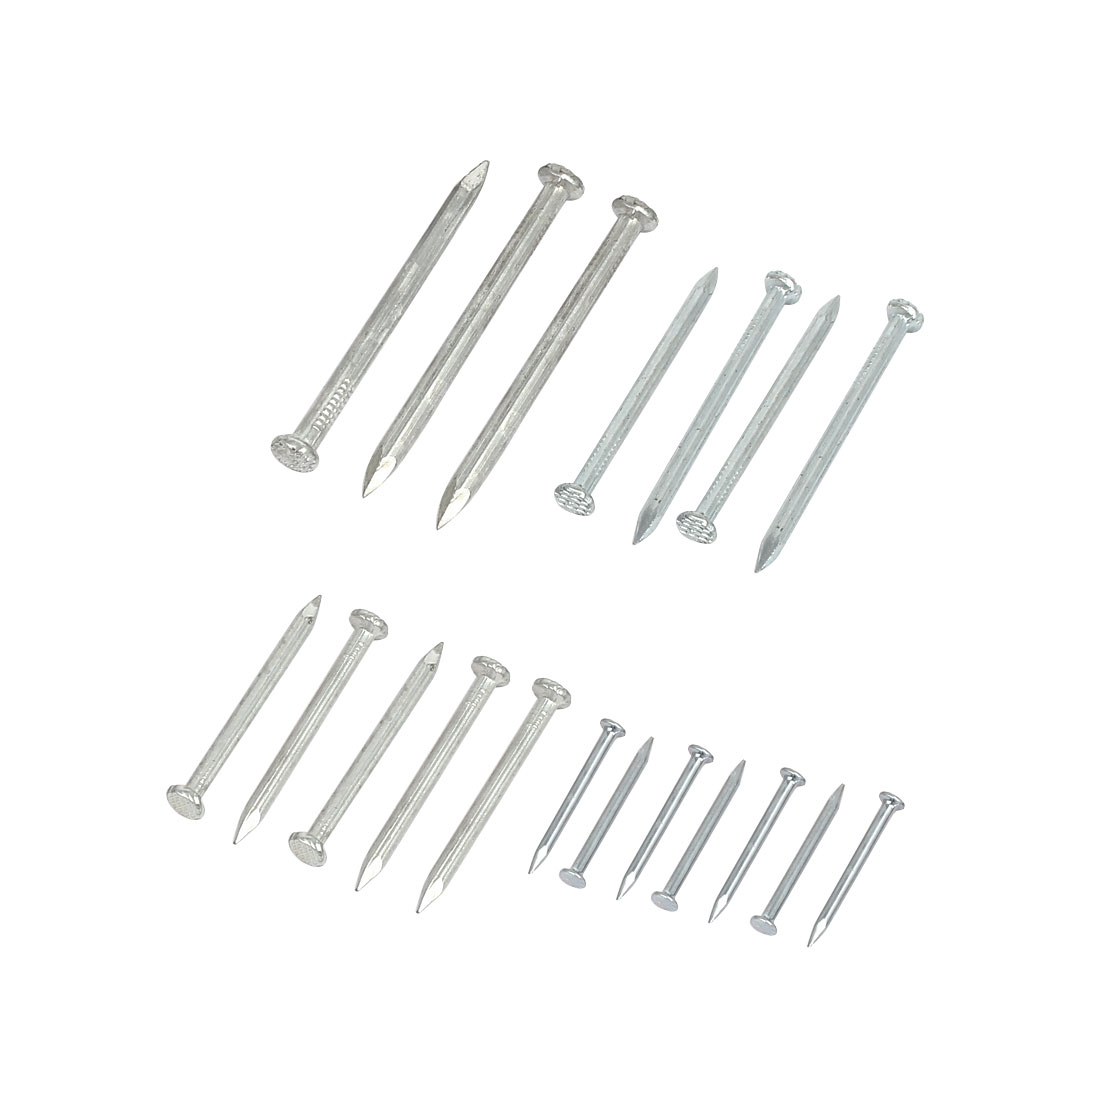 Metal Point Tip Wire Nail Silver Tone 20 in 1 for Fiber Concrete Cement Wall